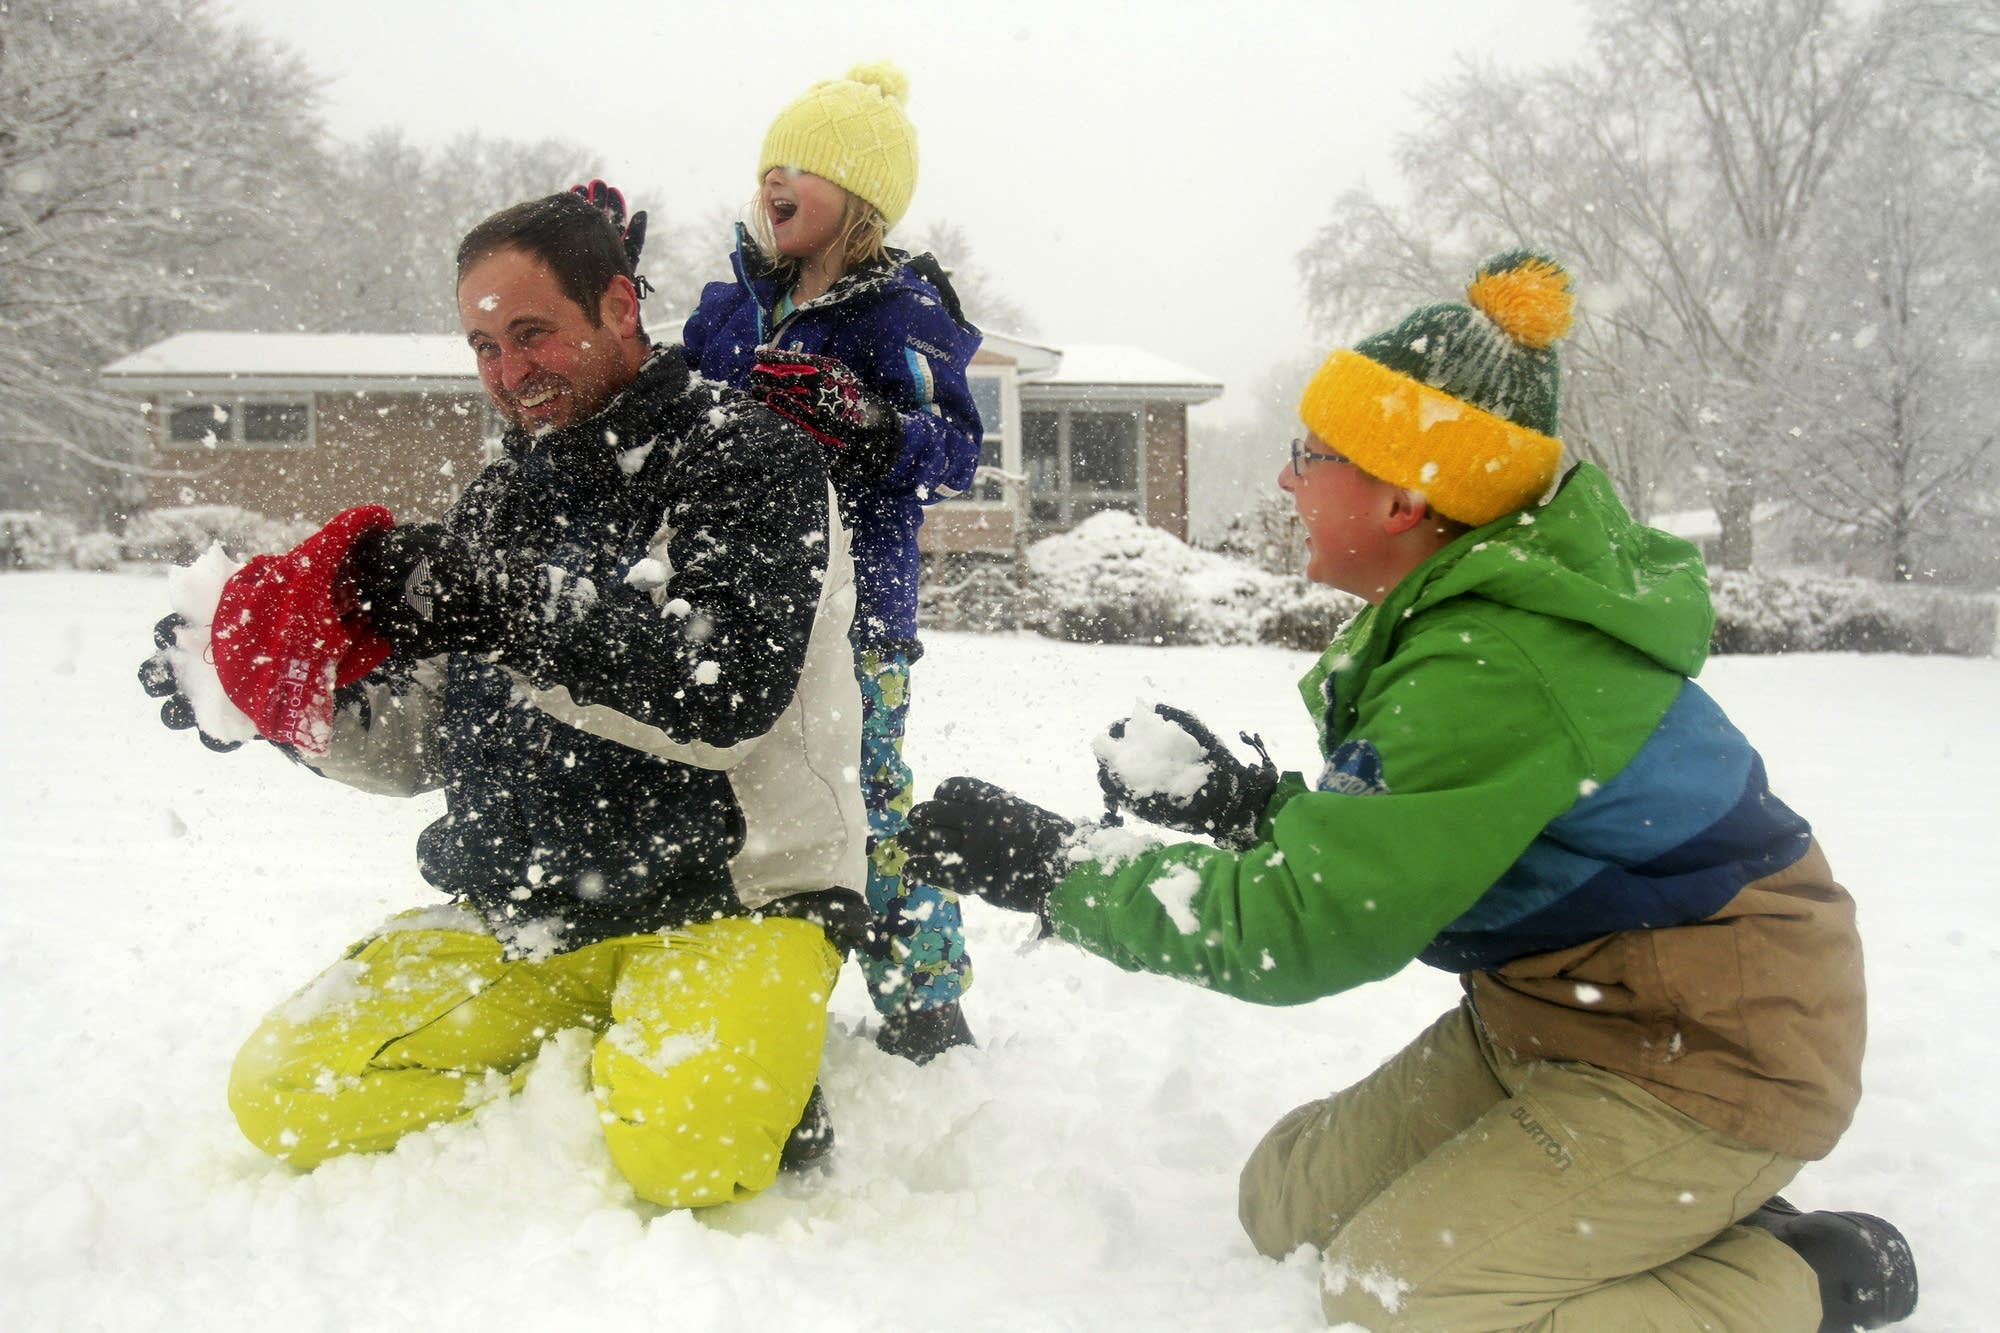 Mark Westerman had a snowball fight with his children, Kayla and Andrew.